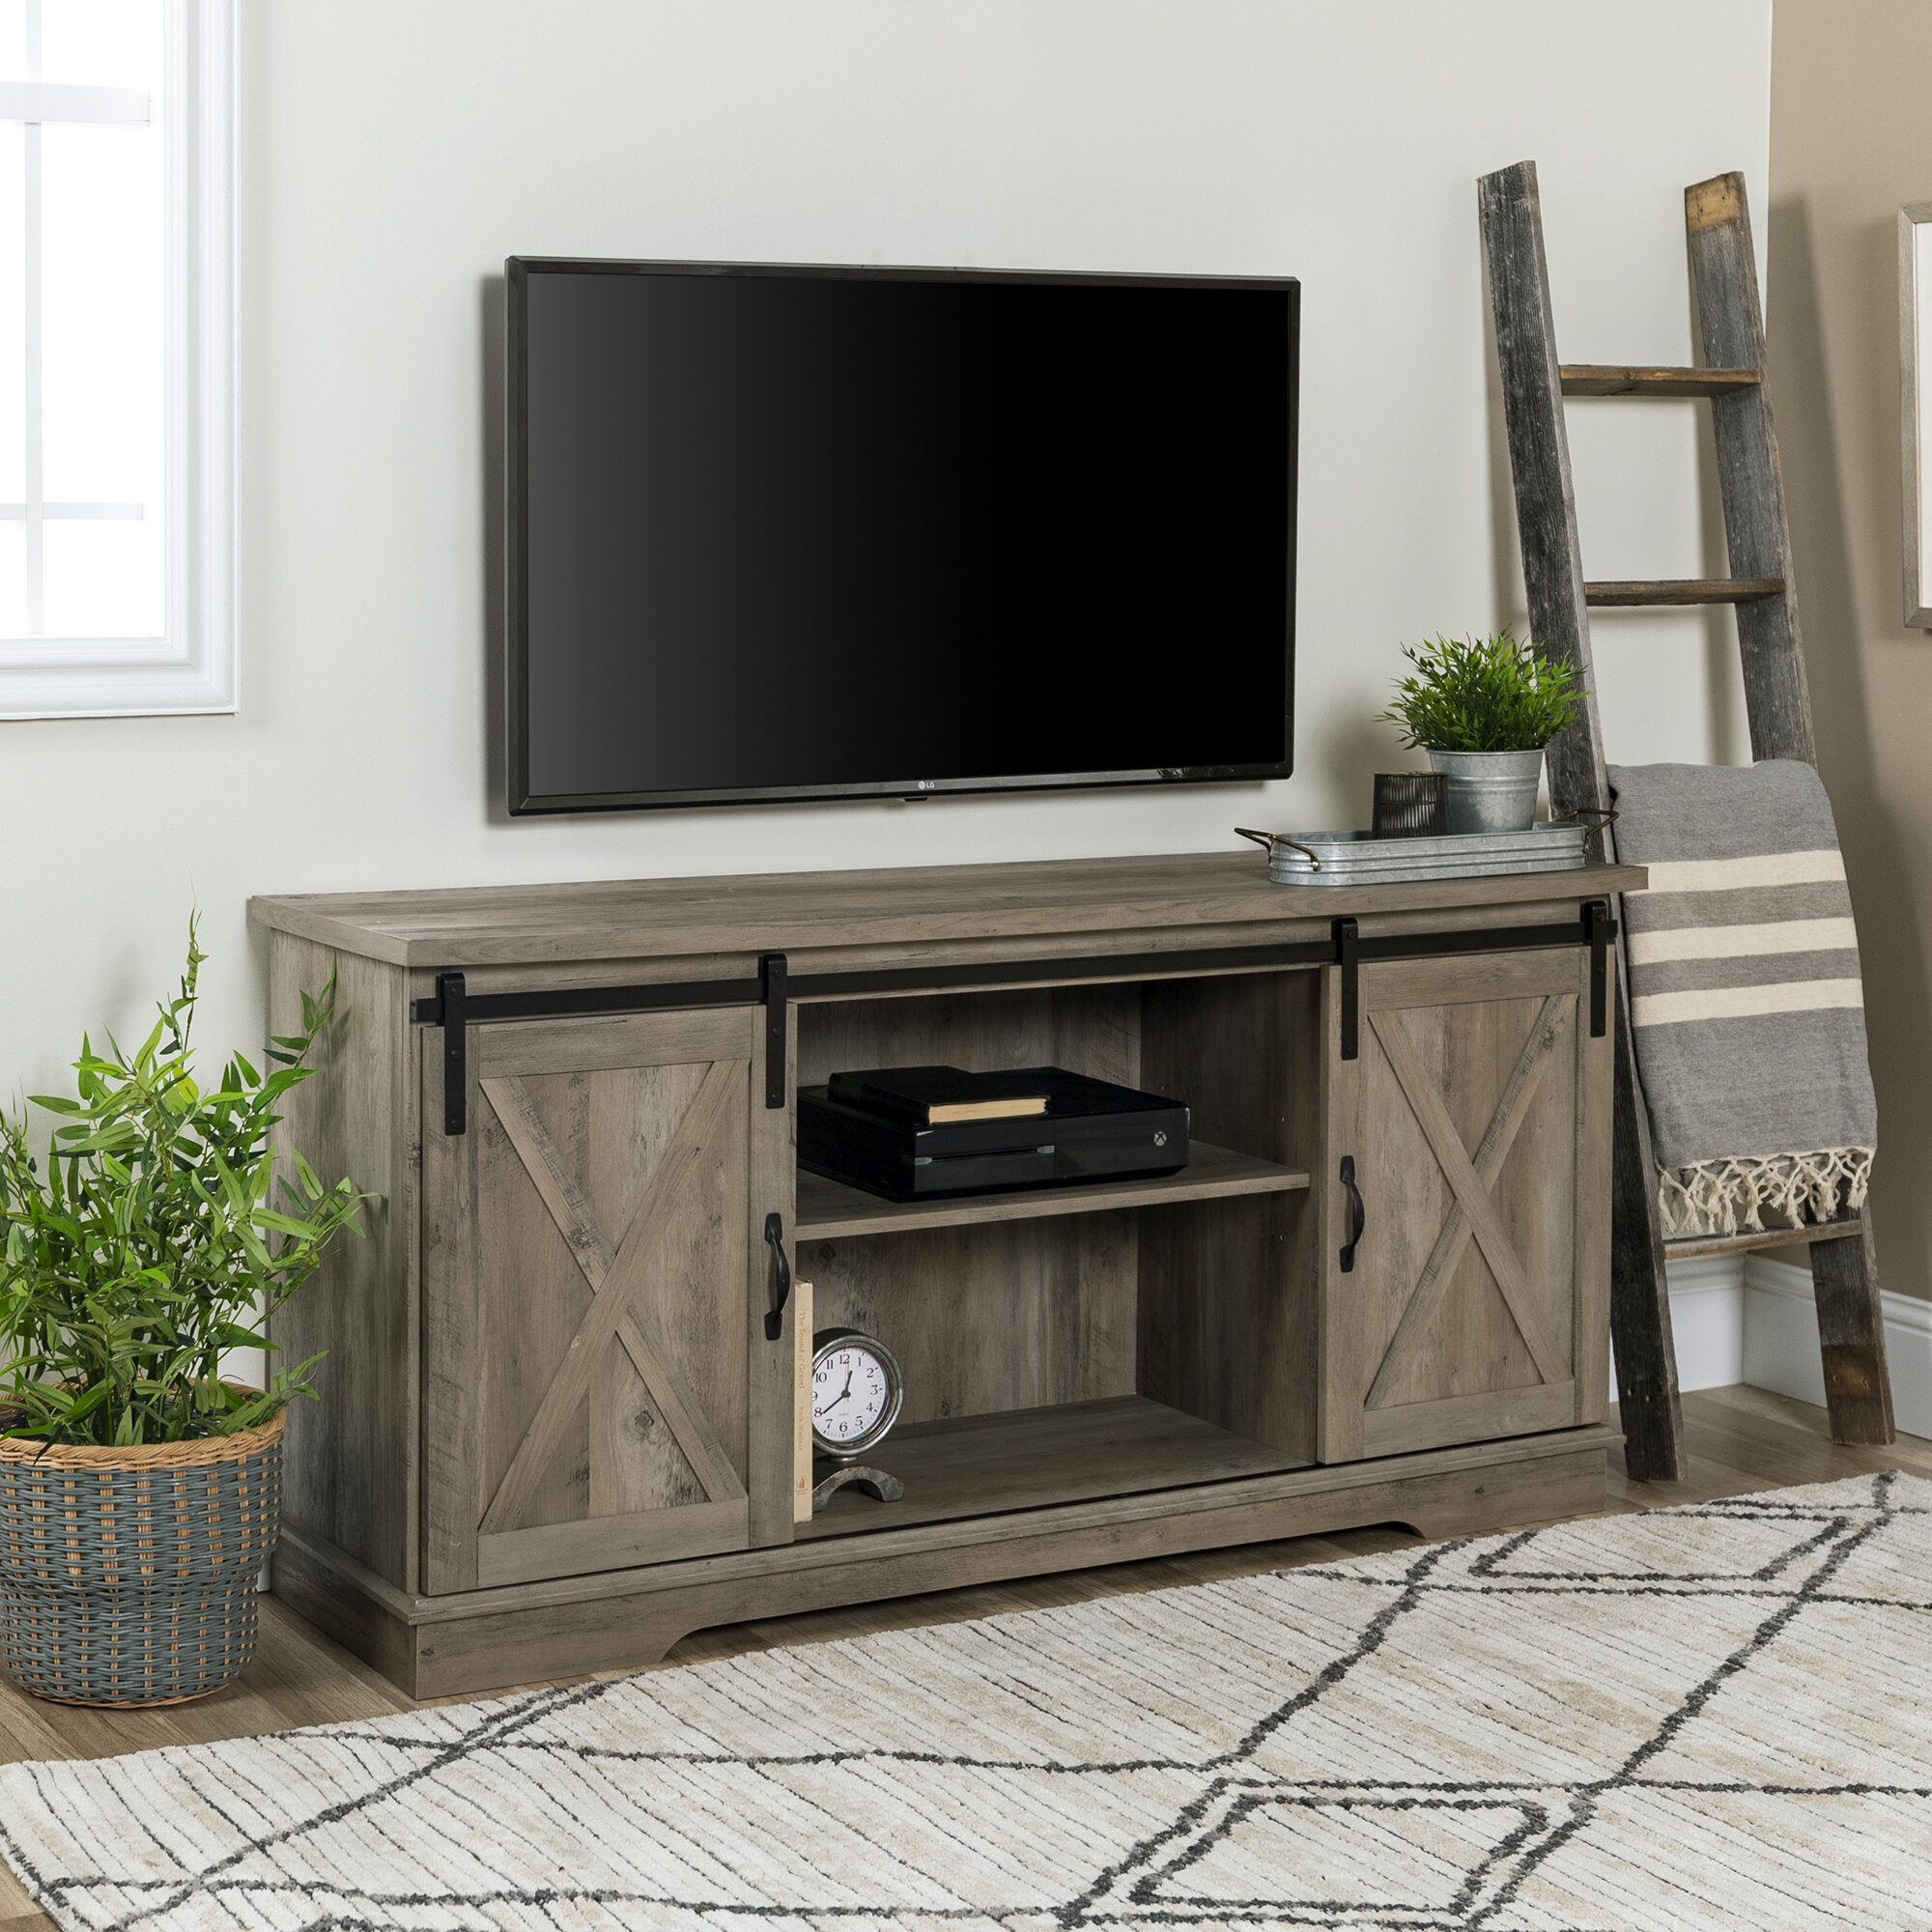 buy online 75c43 f4a2f Kemble TV Stand for TVs up to 58